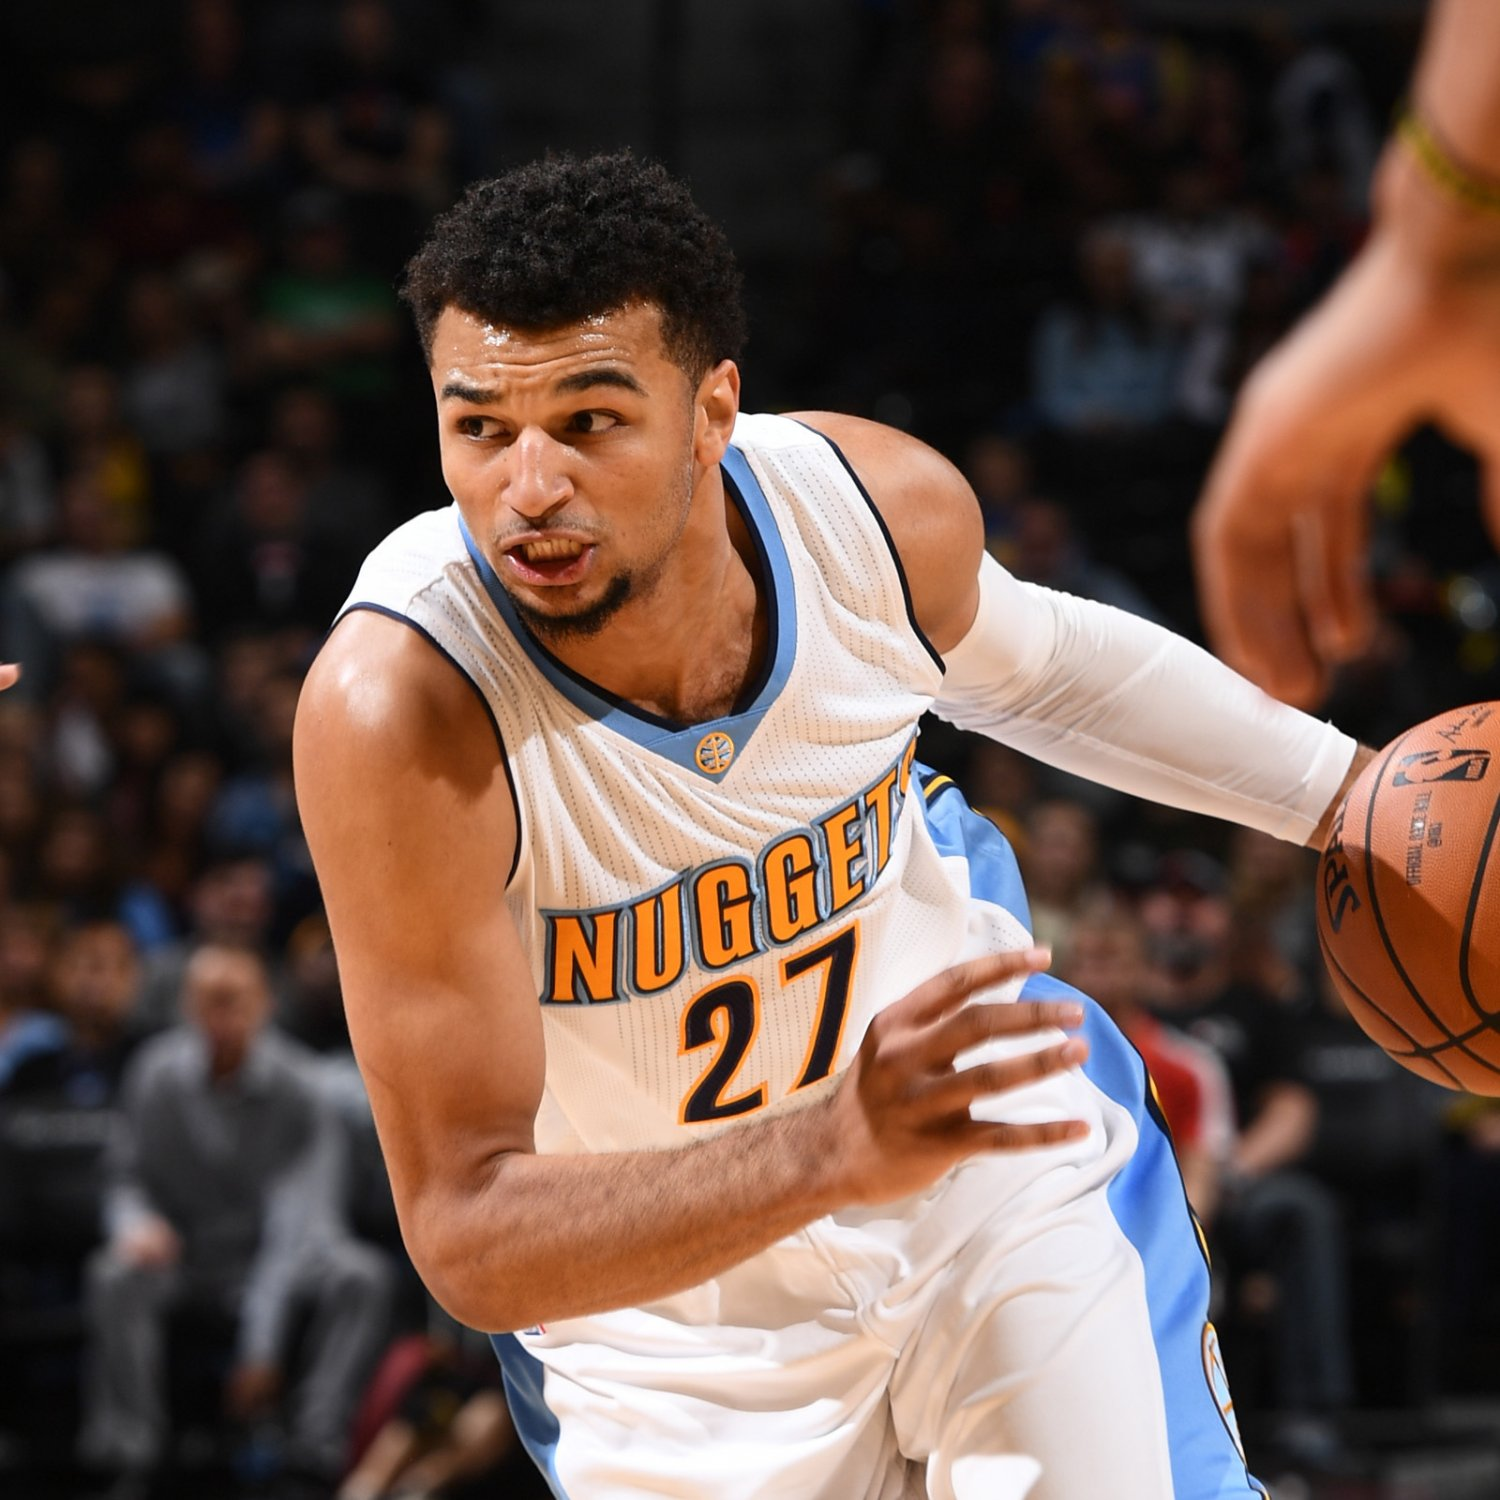 Nuggets Murray: Jamal Murray Overcoming Rough Start For Denver Nuggets